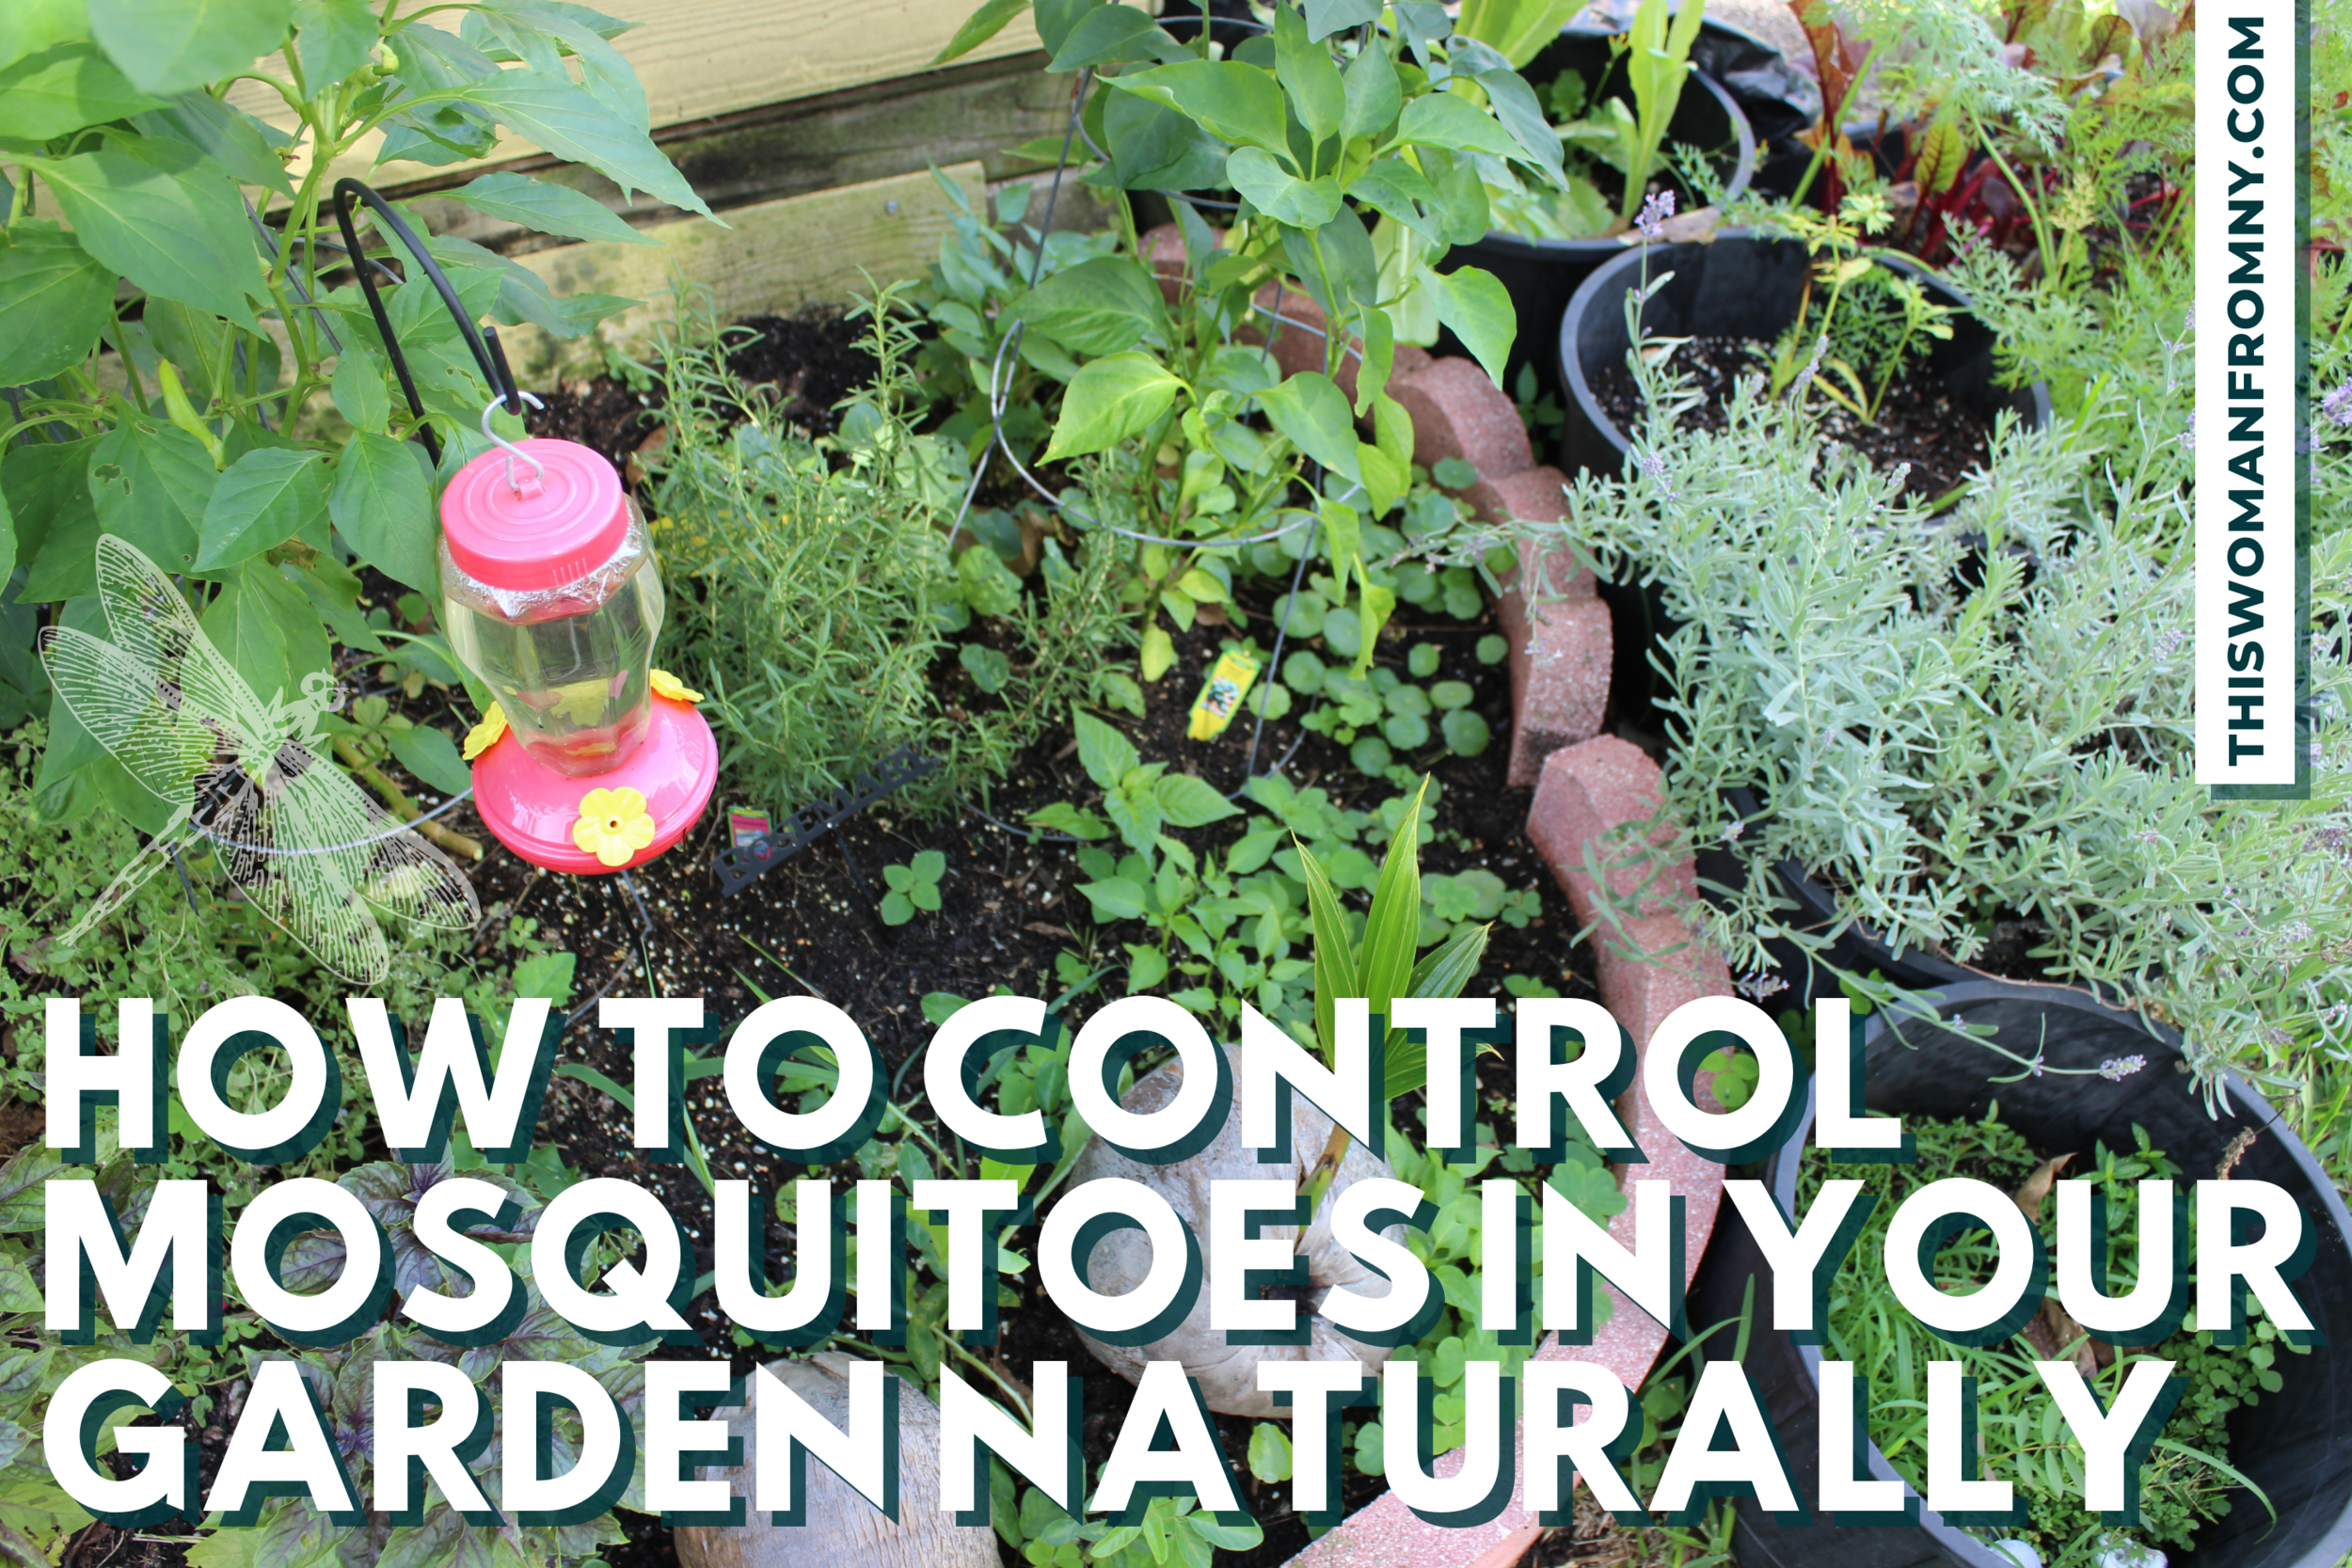 Growing herbs like rosemary and catnip can keep the mosquitoes out!